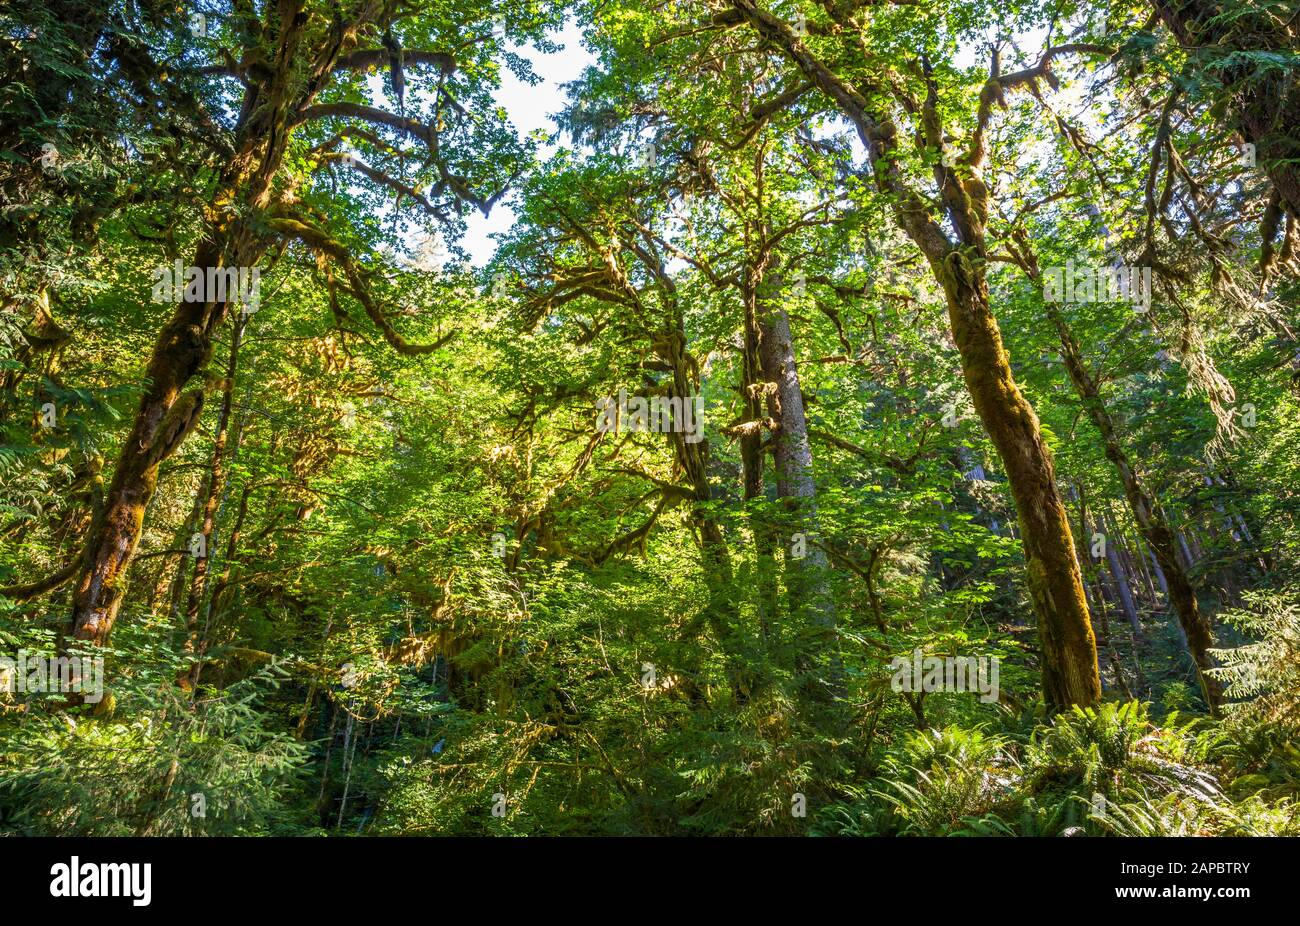 Looking up at the tree canopy of mostly Big Leaf Maple trees, Hoh Rainforest in Olympic National Park near the Hoh river, Washington, USA. Stock Photo